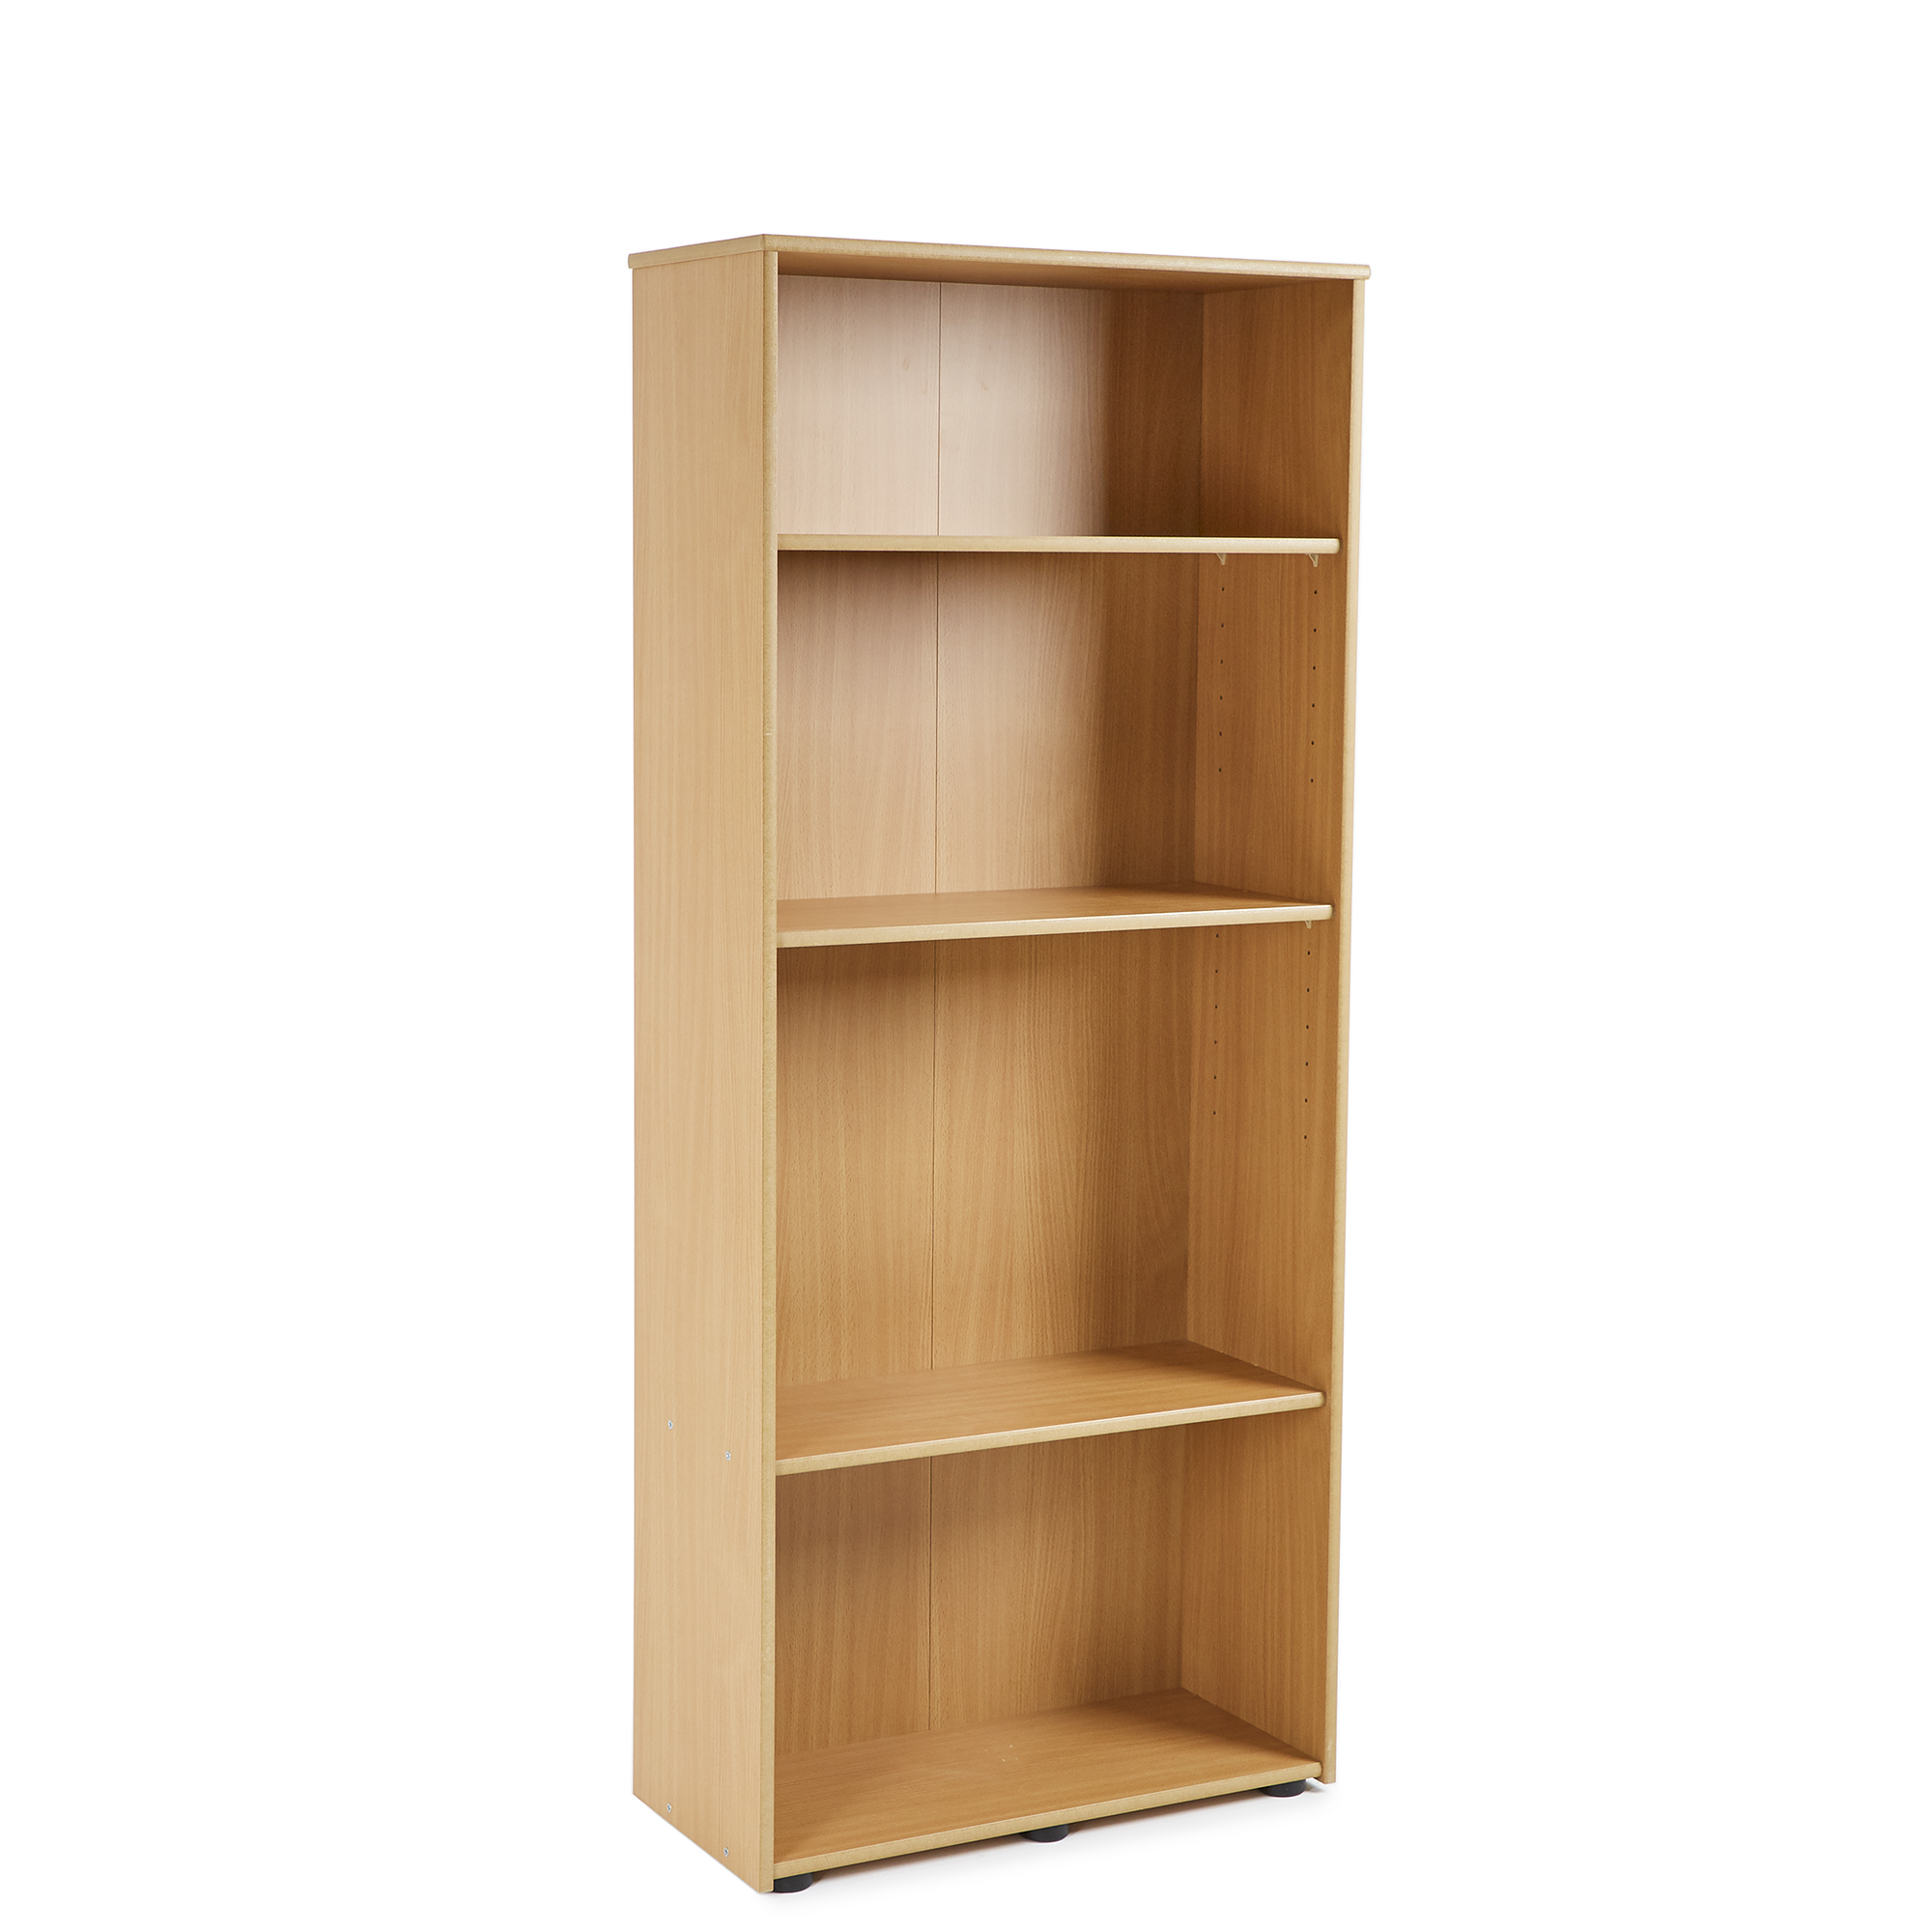 Classmates Single-Sided Bookcases - H1630mm